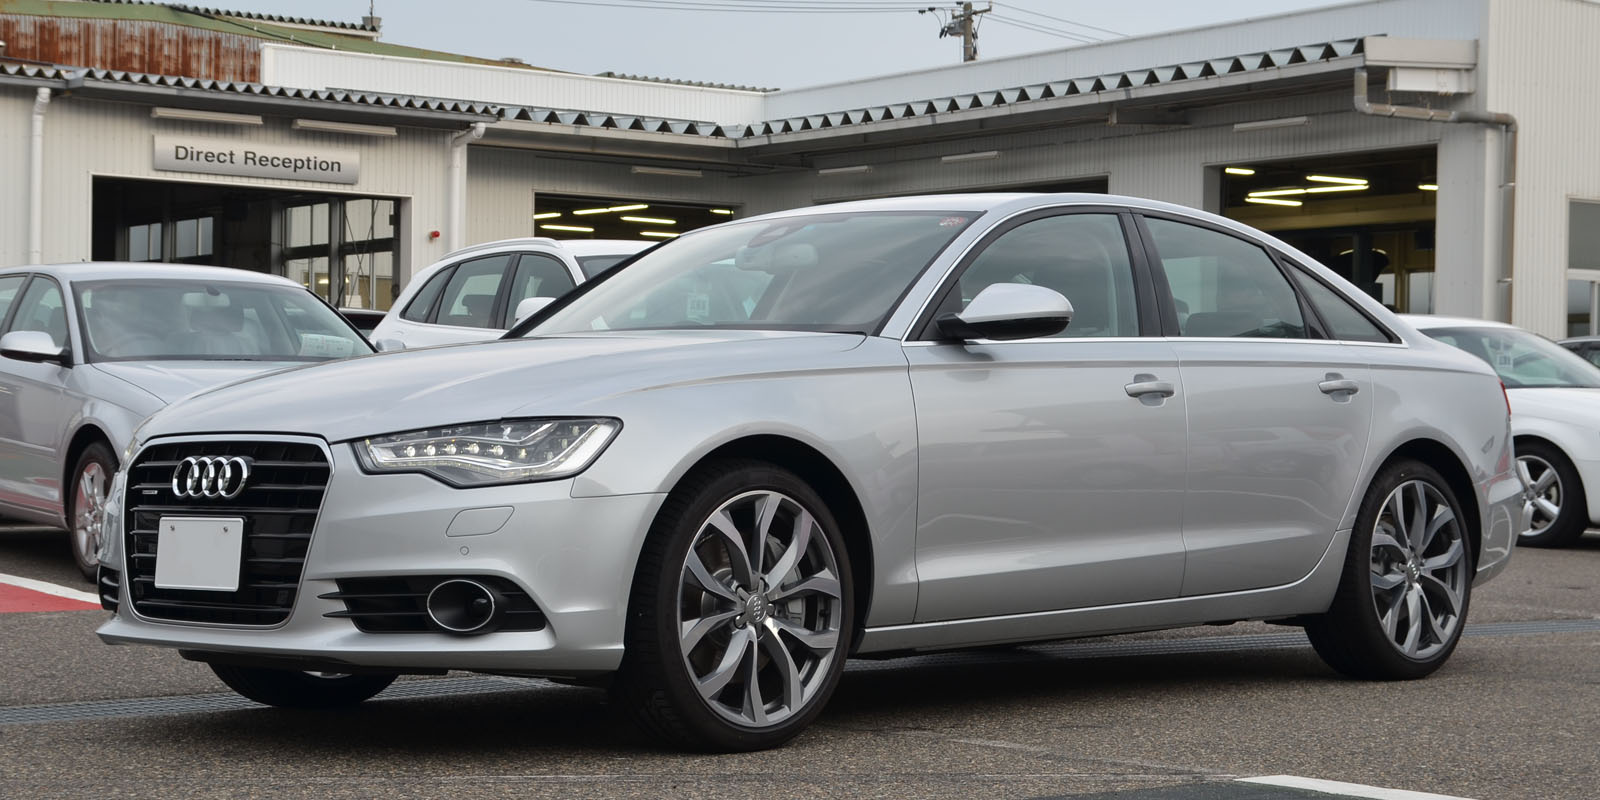 Audi A6 2019 Exterior Side View